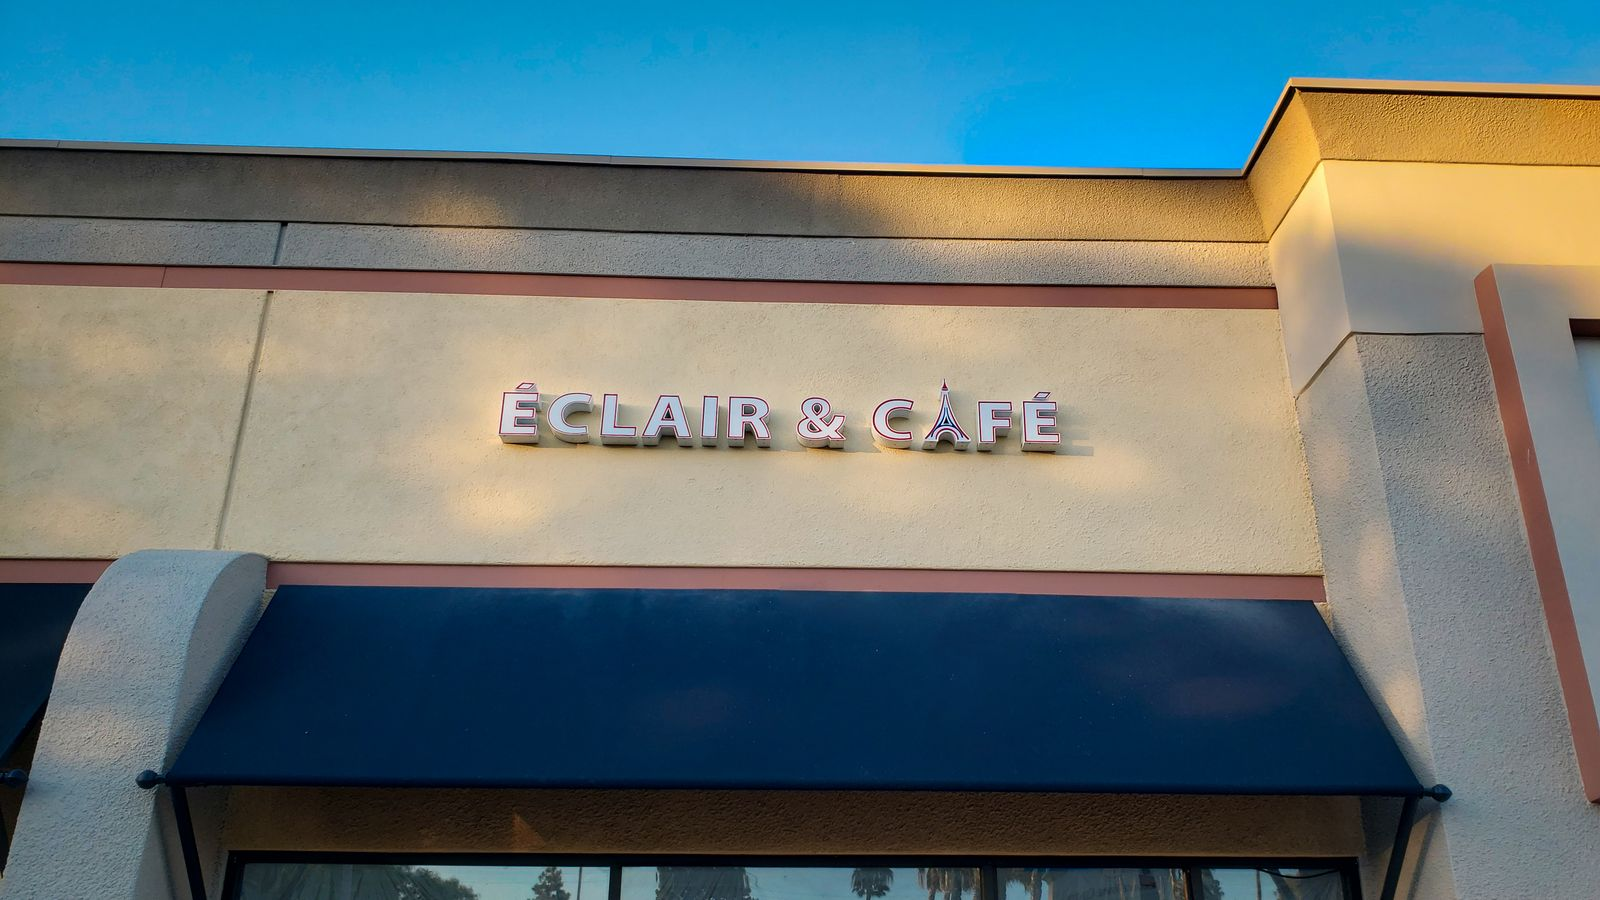 Eclair & Cafe Channel Letters